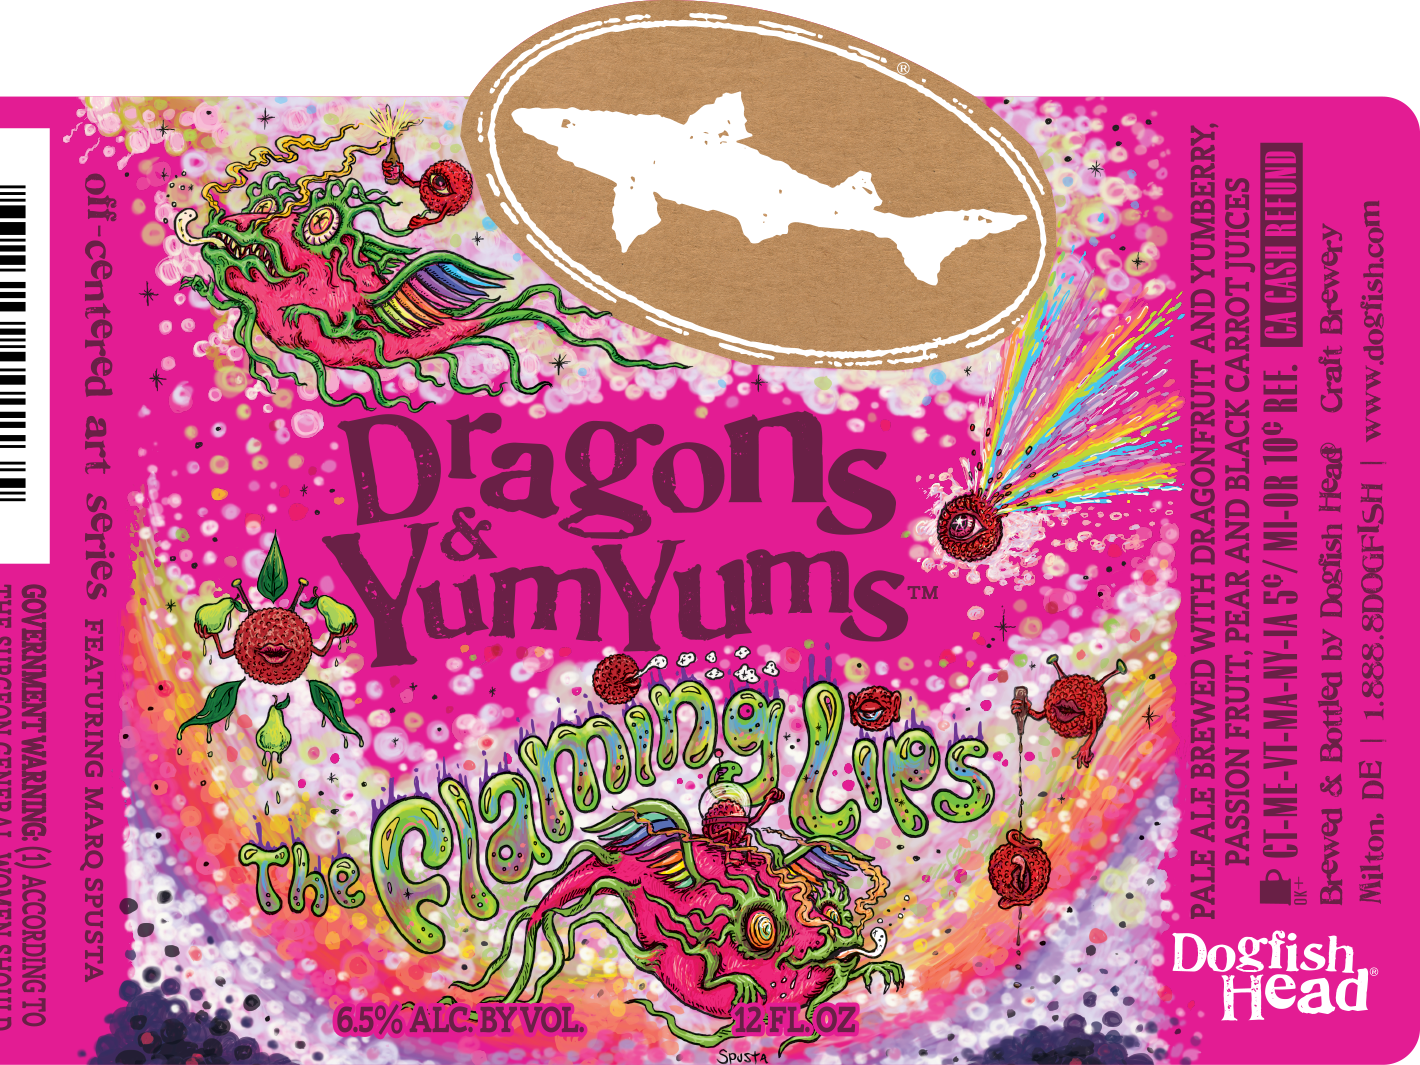 Dogfish Head's Dragons & YumYums label by Marq Spusta. A new label will be featured in 2019.